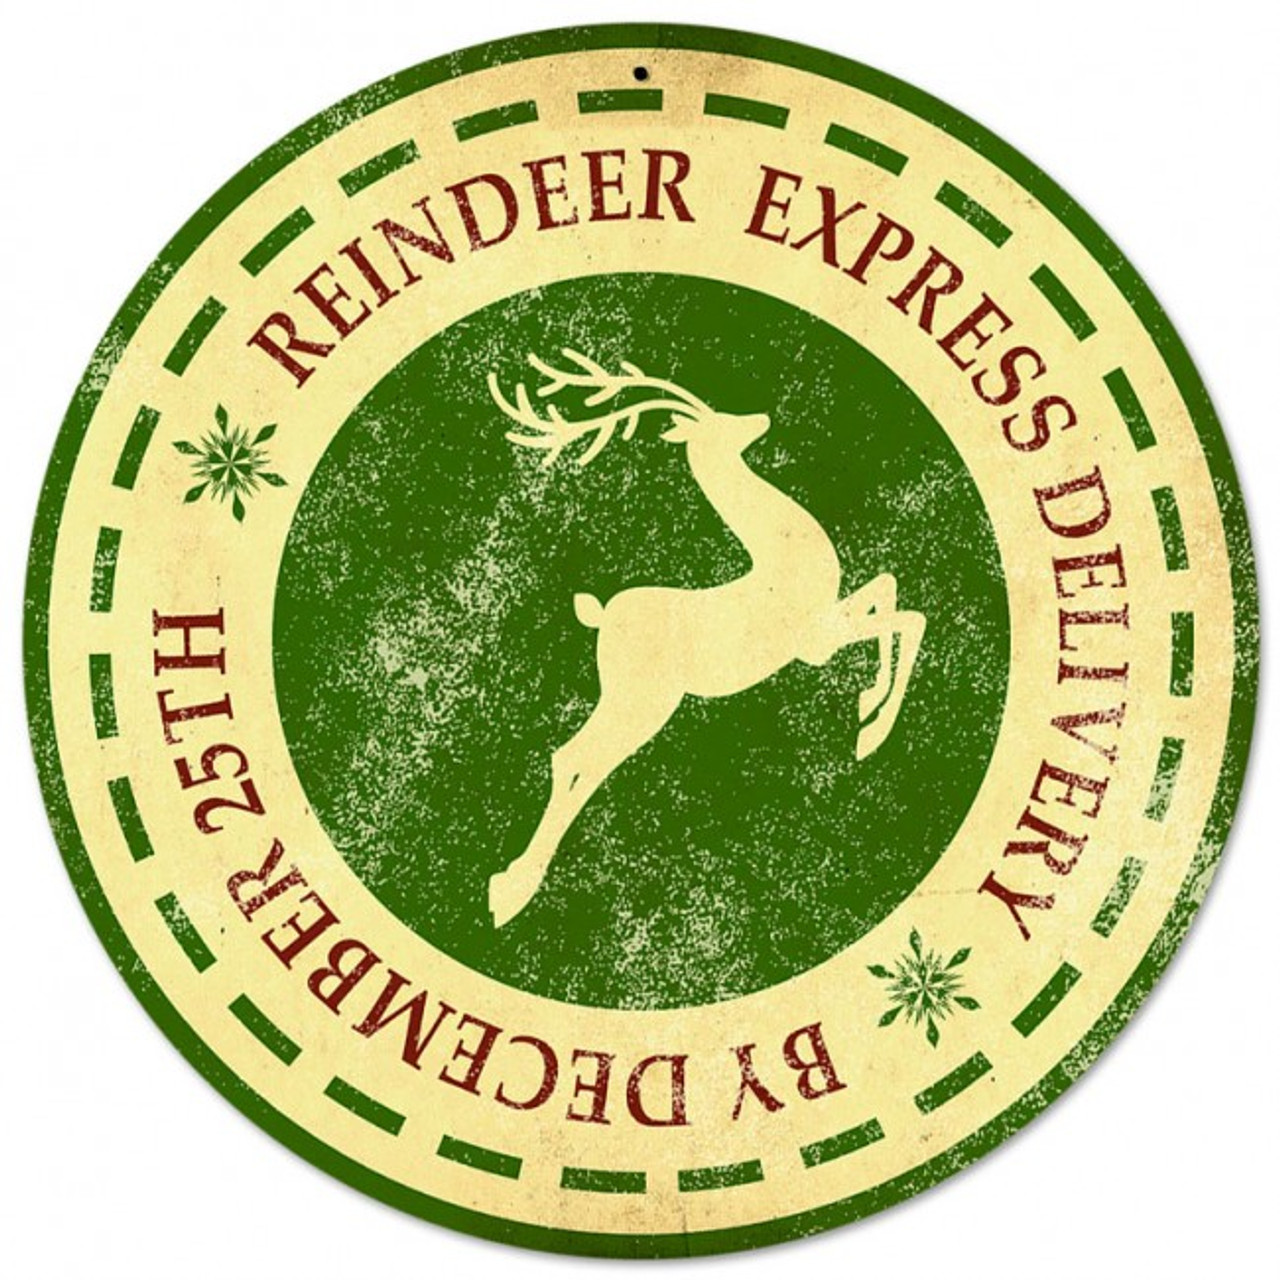 Reindeer Express Delivery Round Metal Sign 14 x 14 Inches